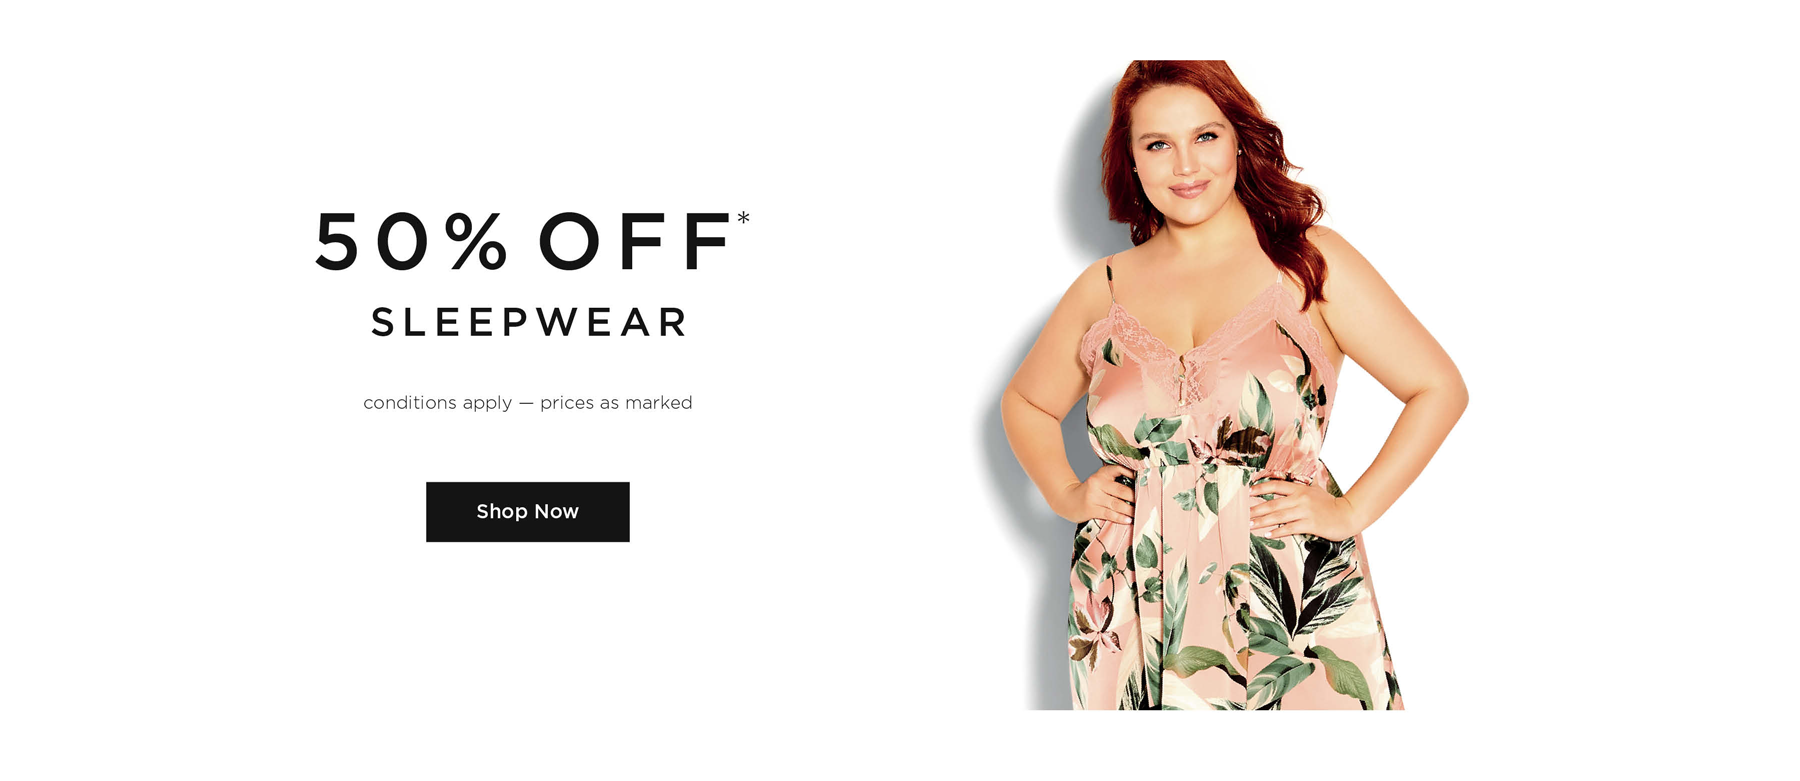 50% Off Sleepwear. Conditions apply - prices as marked. Shop Now.